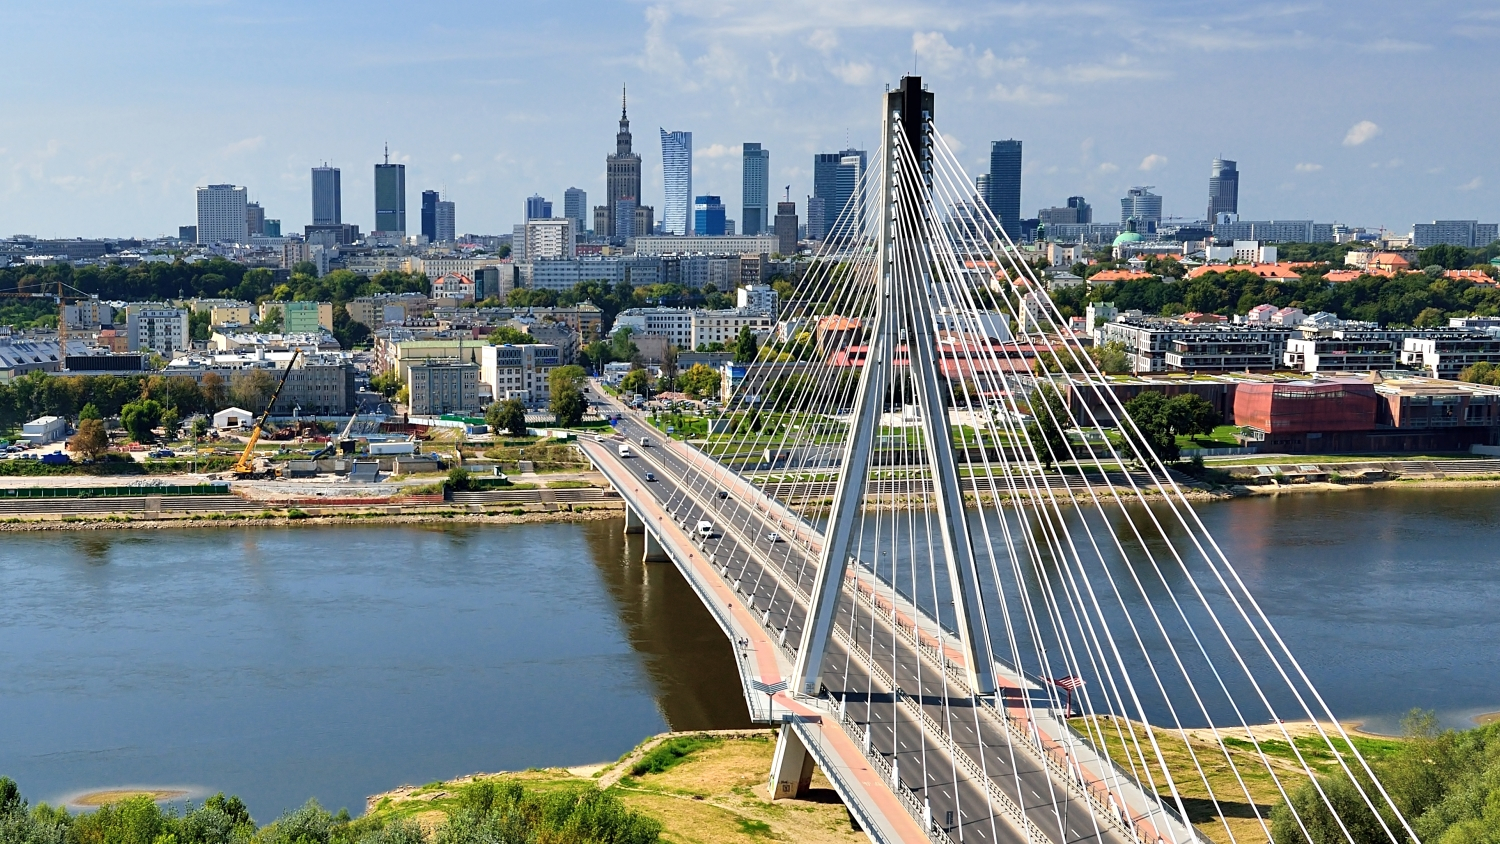 Poland capital requirements for investment wetfeet careers in investment banking pdf viewer